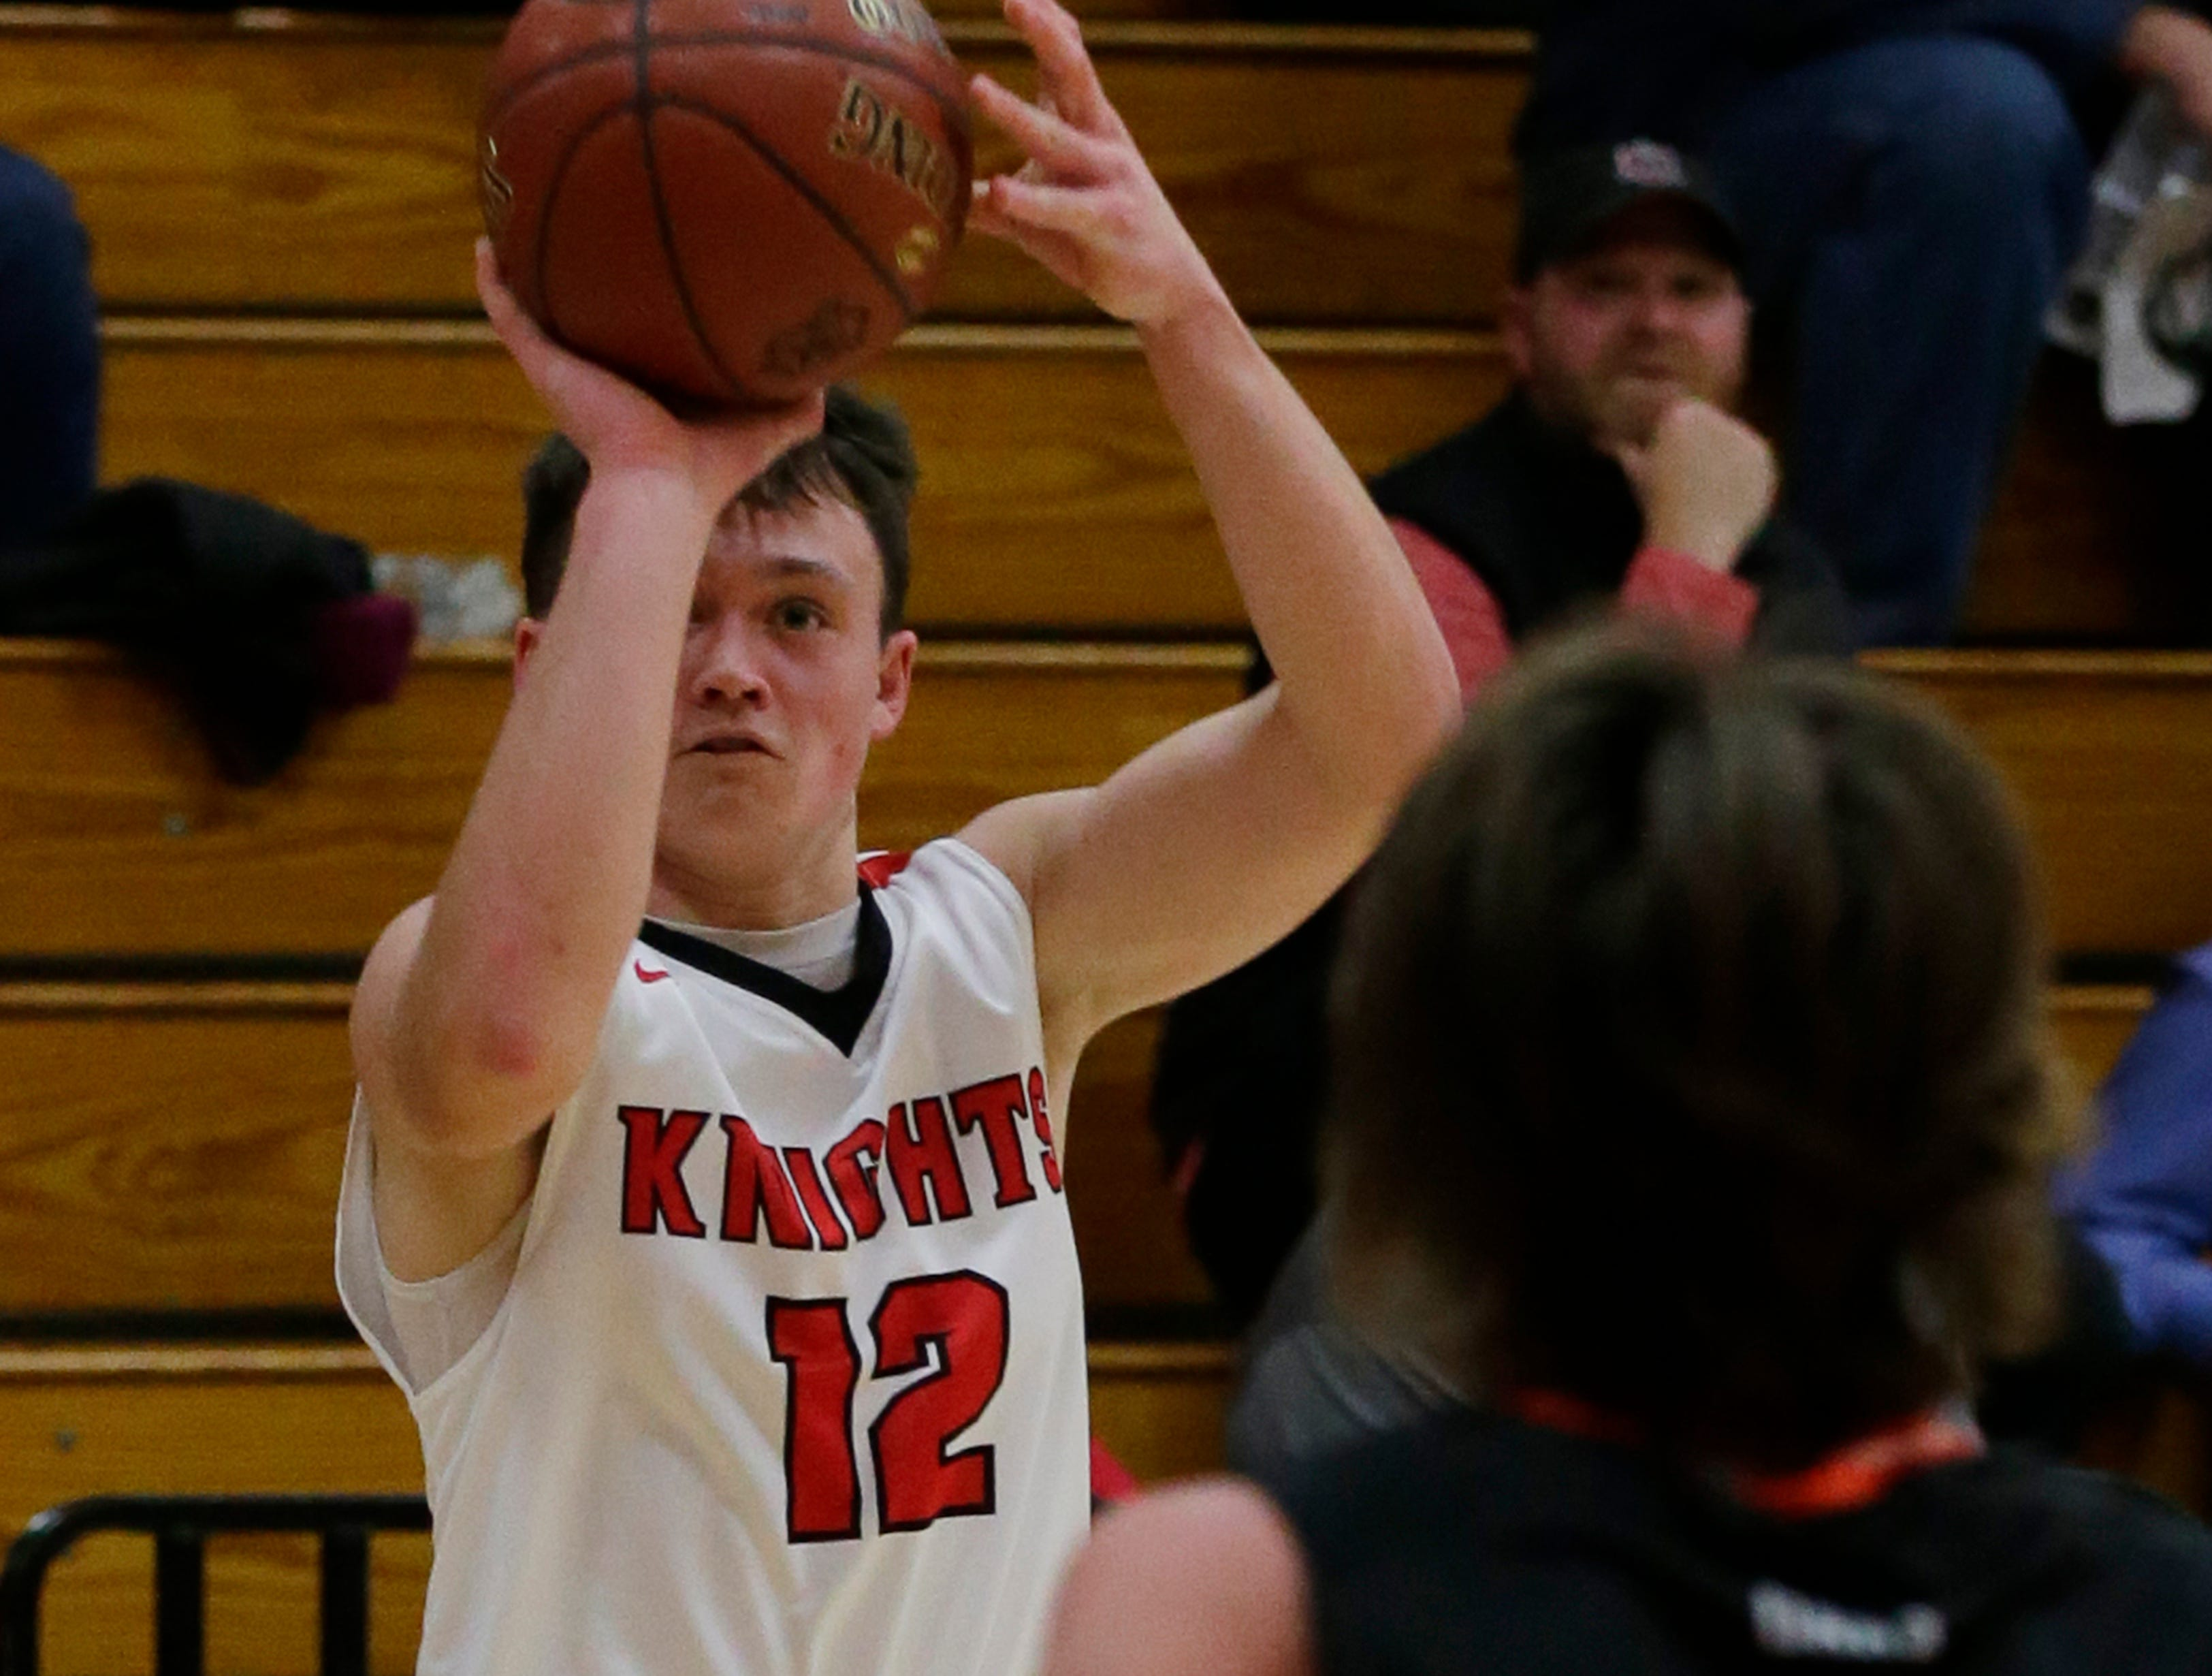 Lourdes Academy's Josh Bauer puts up a three point shot.  Lourdes Academy Knights played Oakfield Oaks in boys basketball Tuesday, Dec. 4, 2018, at Lourdes Castle in Oshkosh, Wis.